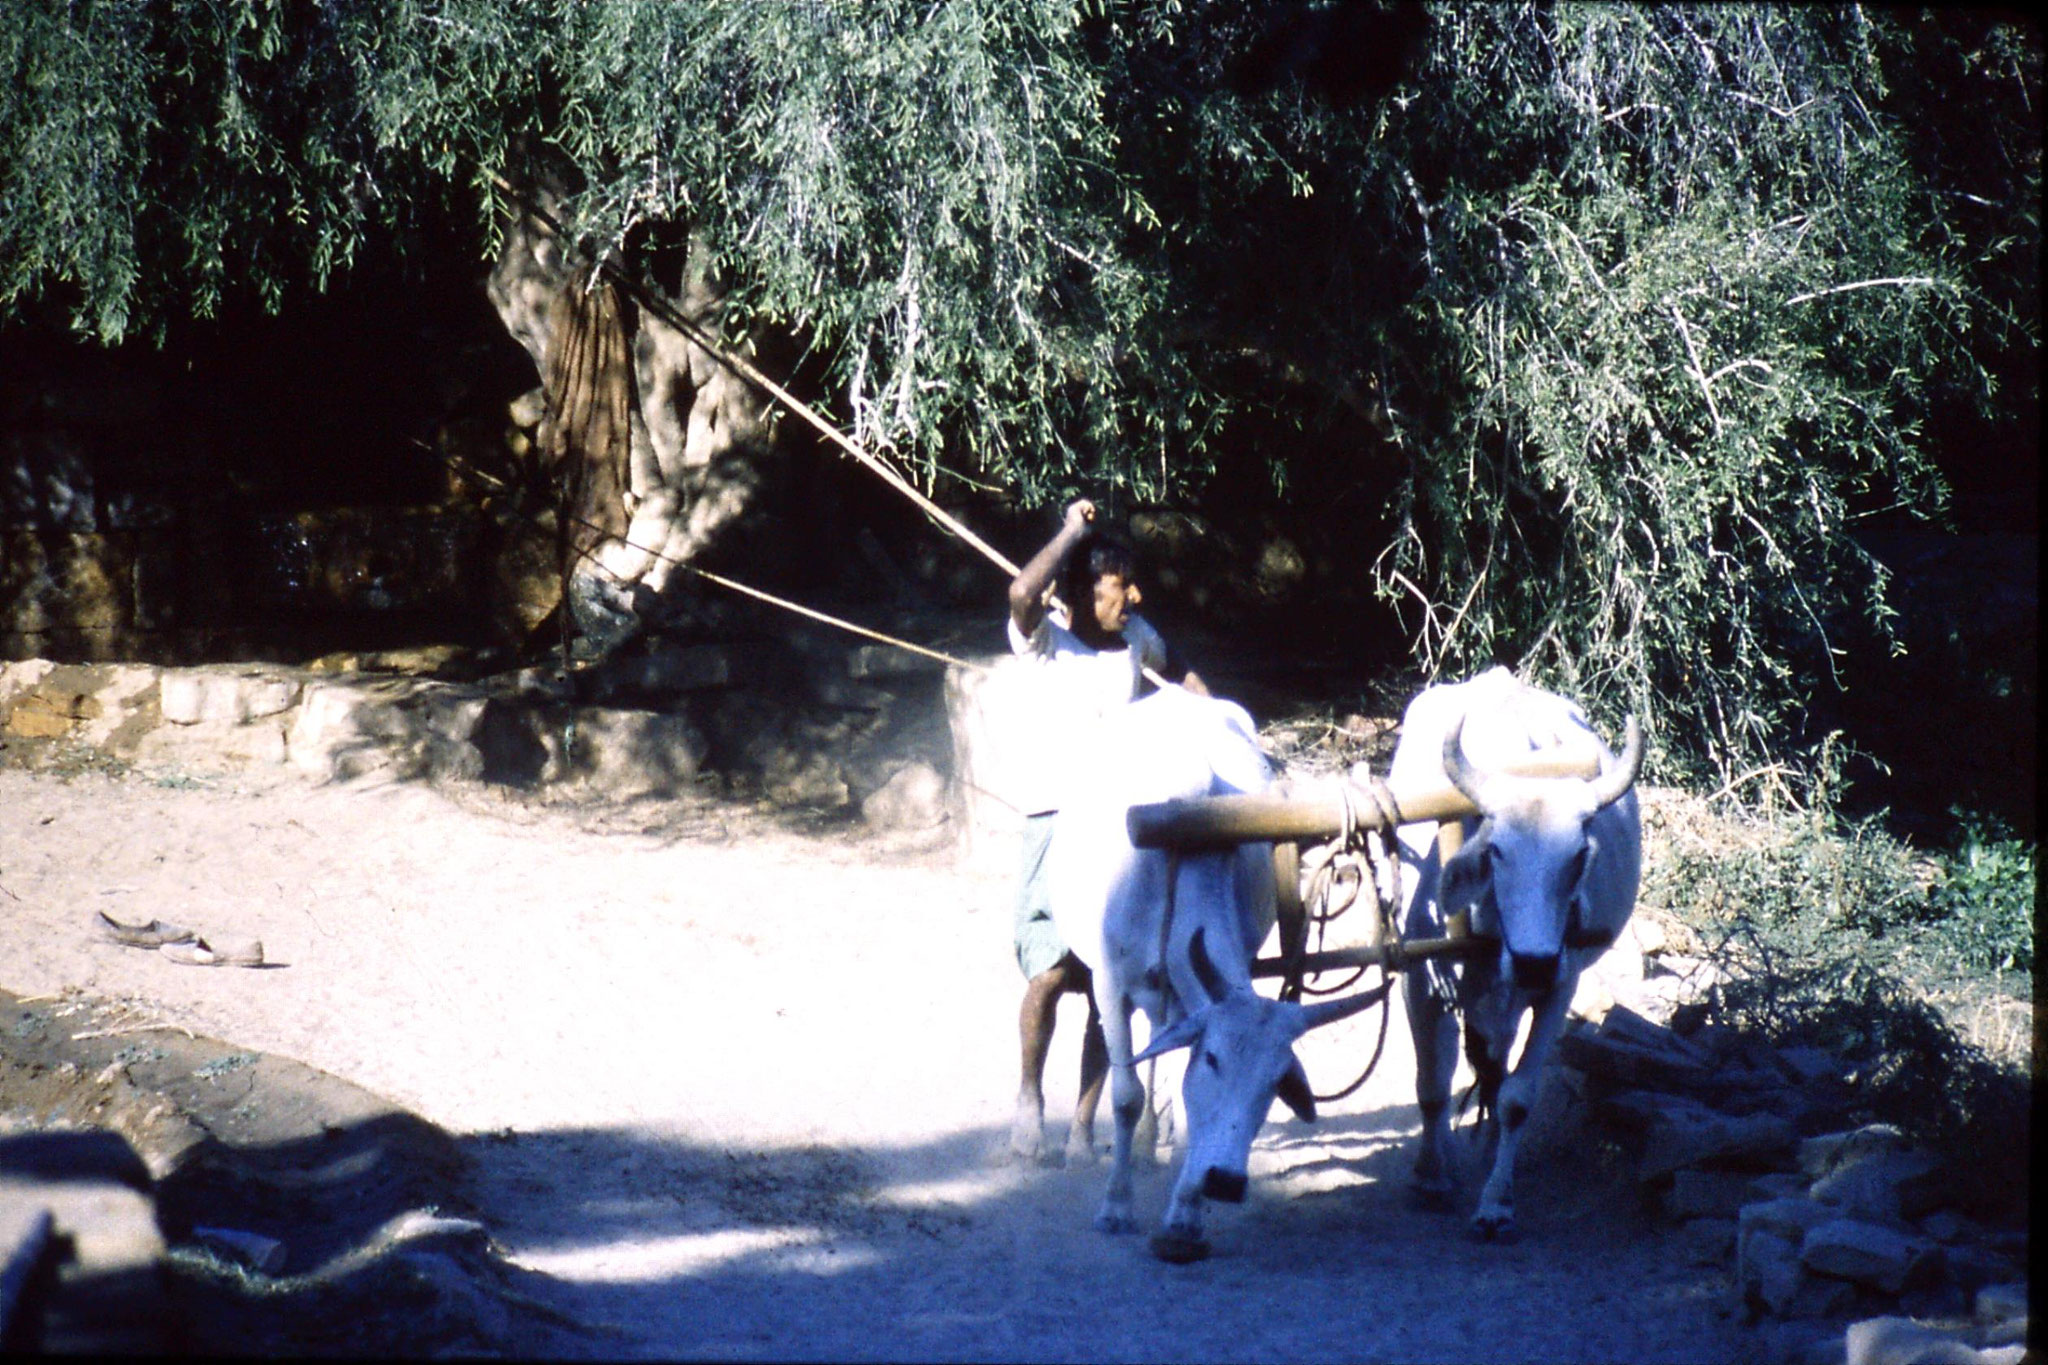 4/12/1989: 9: oxen drawing water